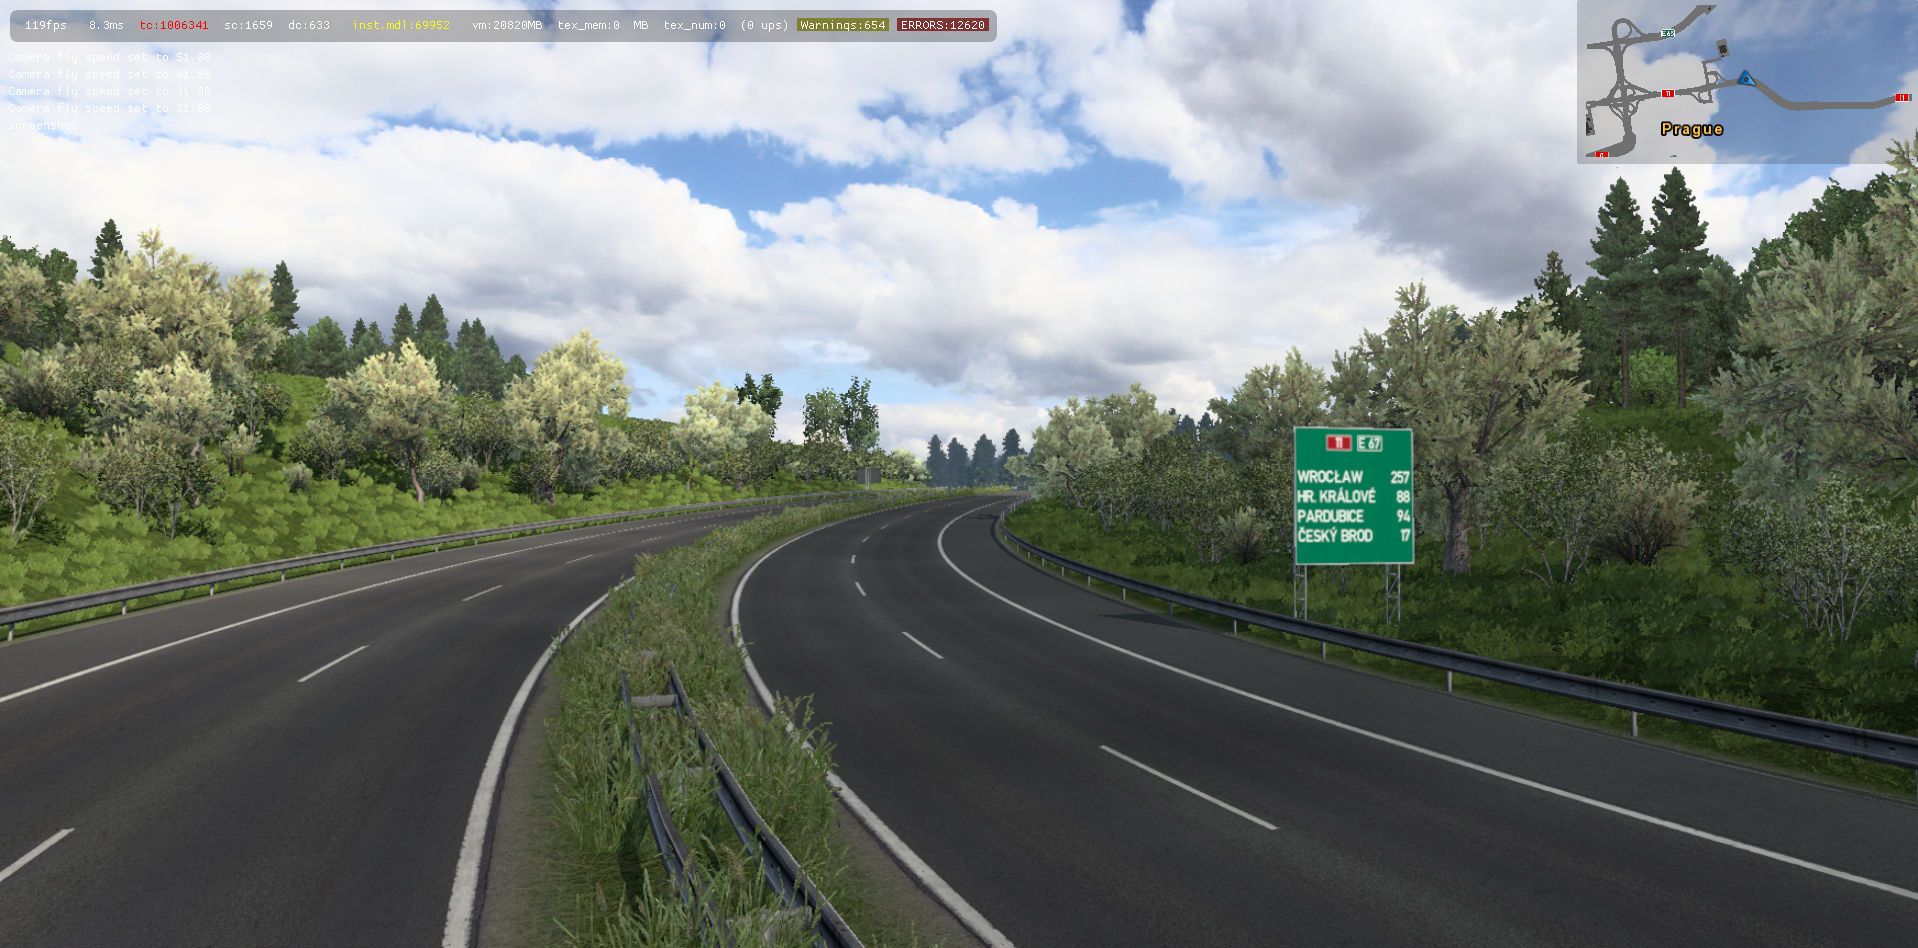 ets2_20210531_204032_00.png